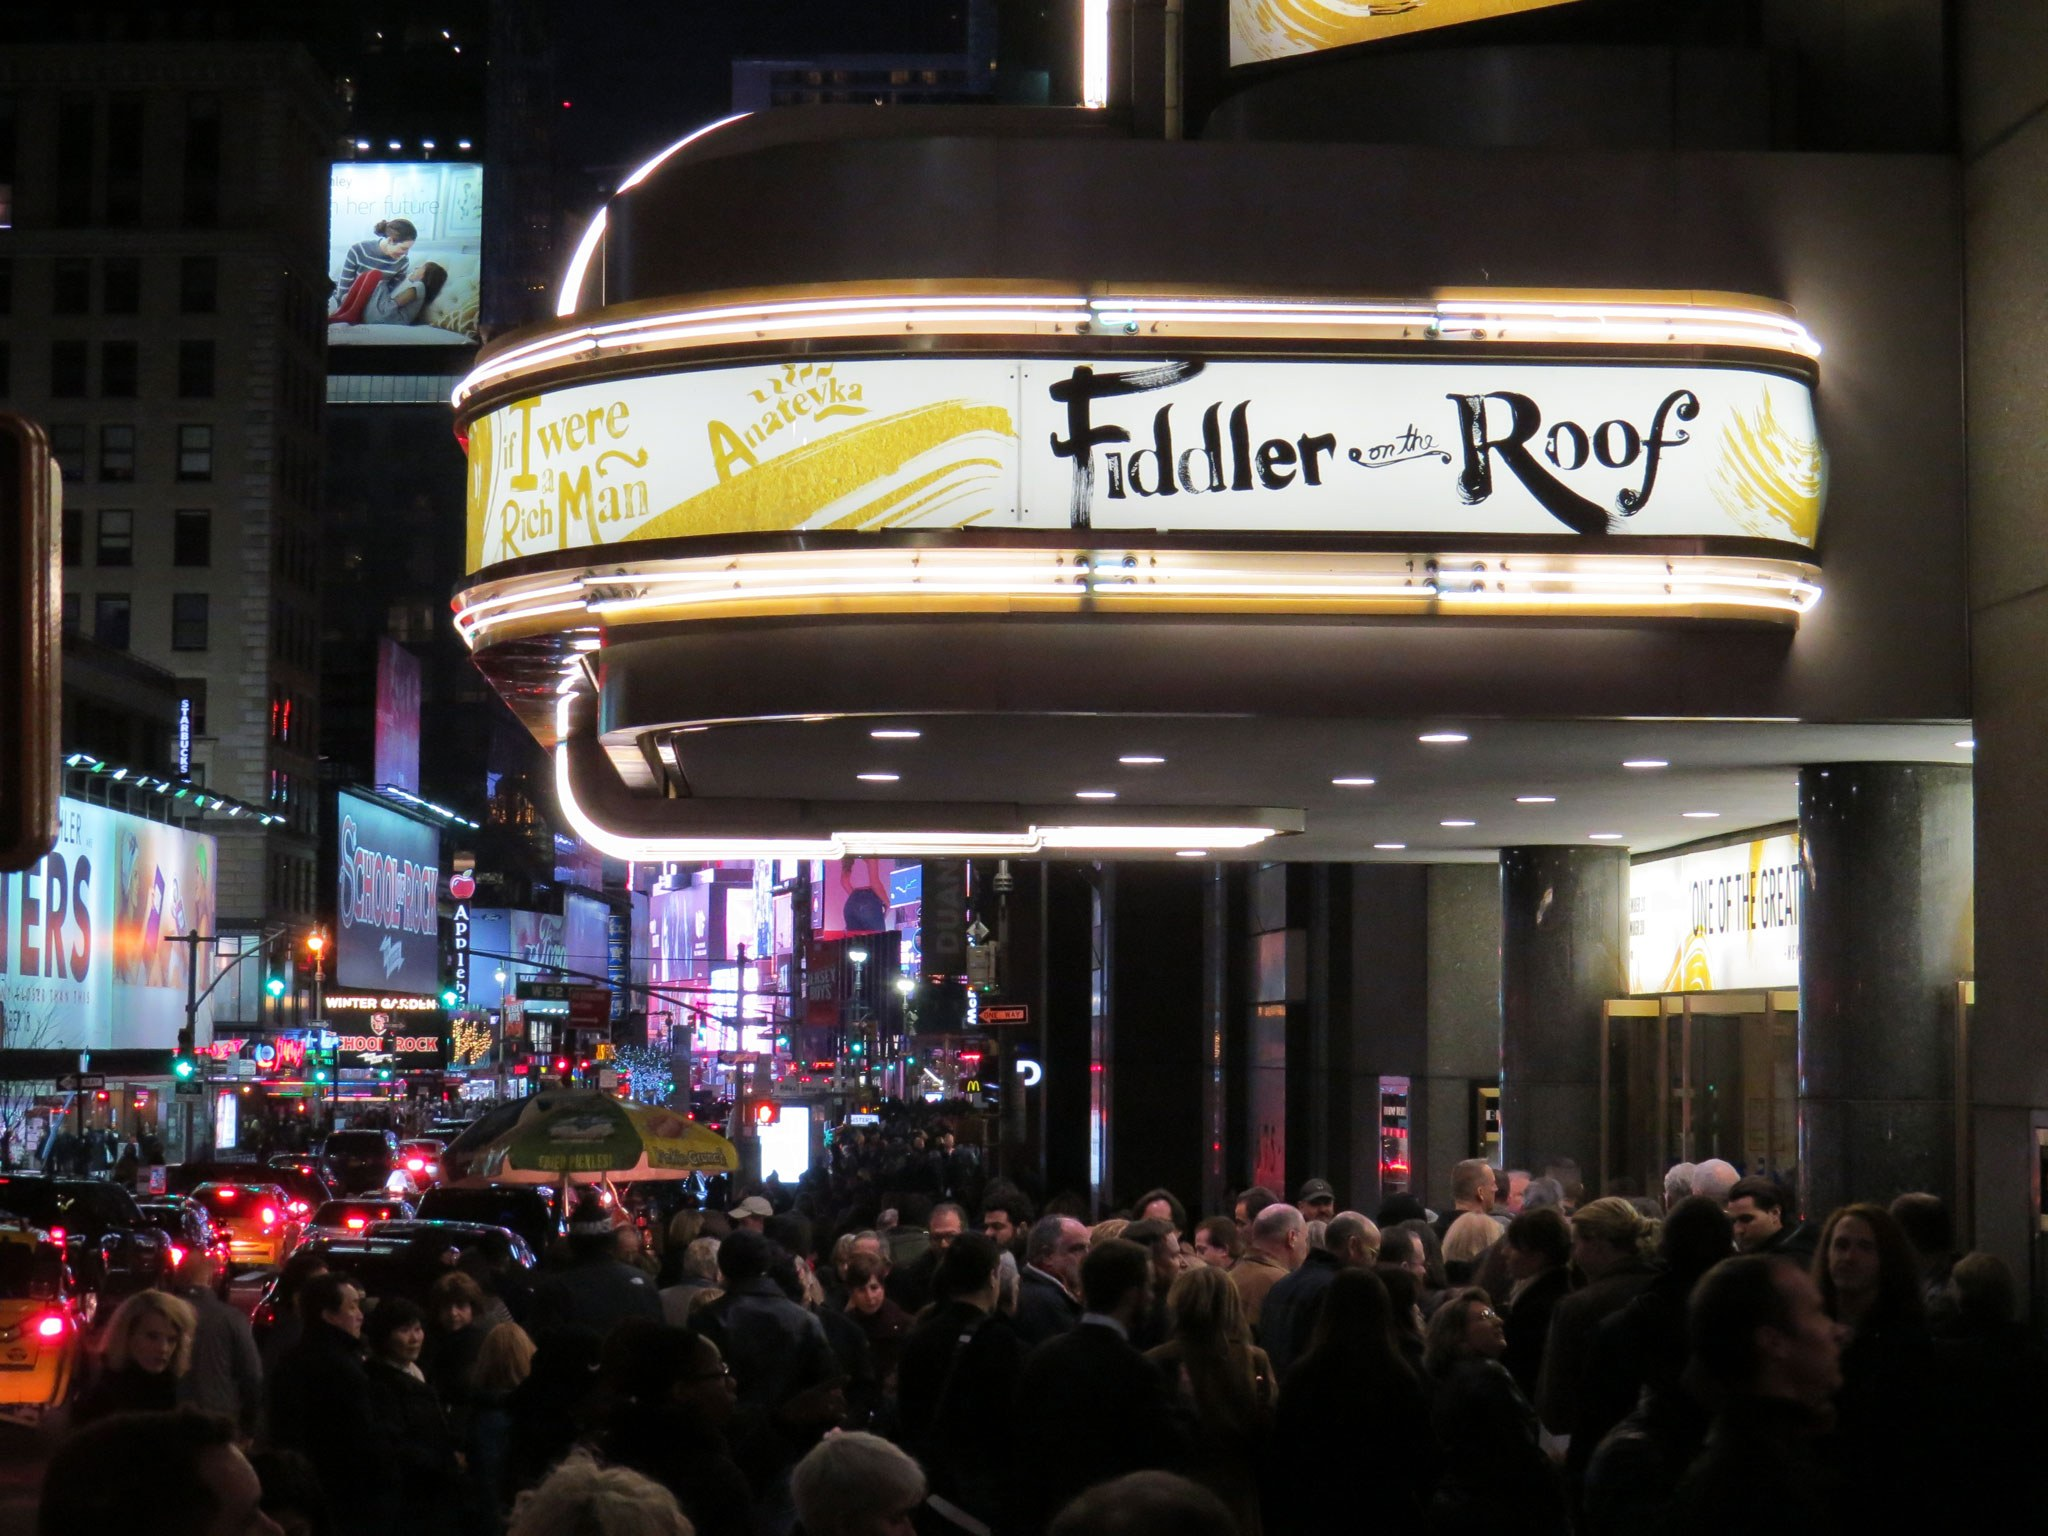 Fiddler on the Roof (2015) Marquee